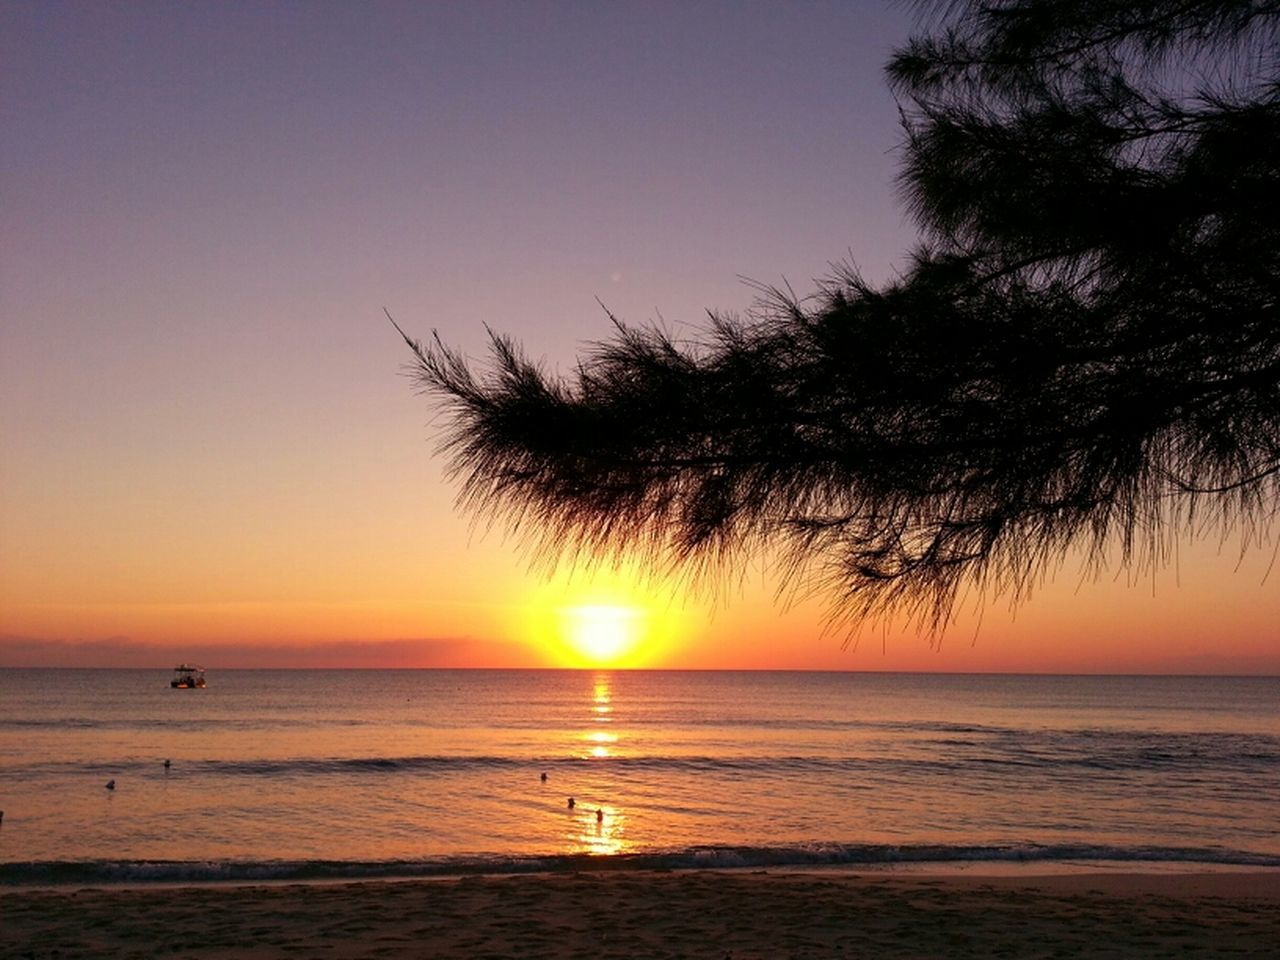 sunset, sea, horizon over water, beauty in nature, scenics, beach, water, tranquil scene, nature, sun, tranquility, orange color, idyllic, sky, silhouette, no people, outdoors, clear sky, tree, travel destinations, wave, vacations, horizon